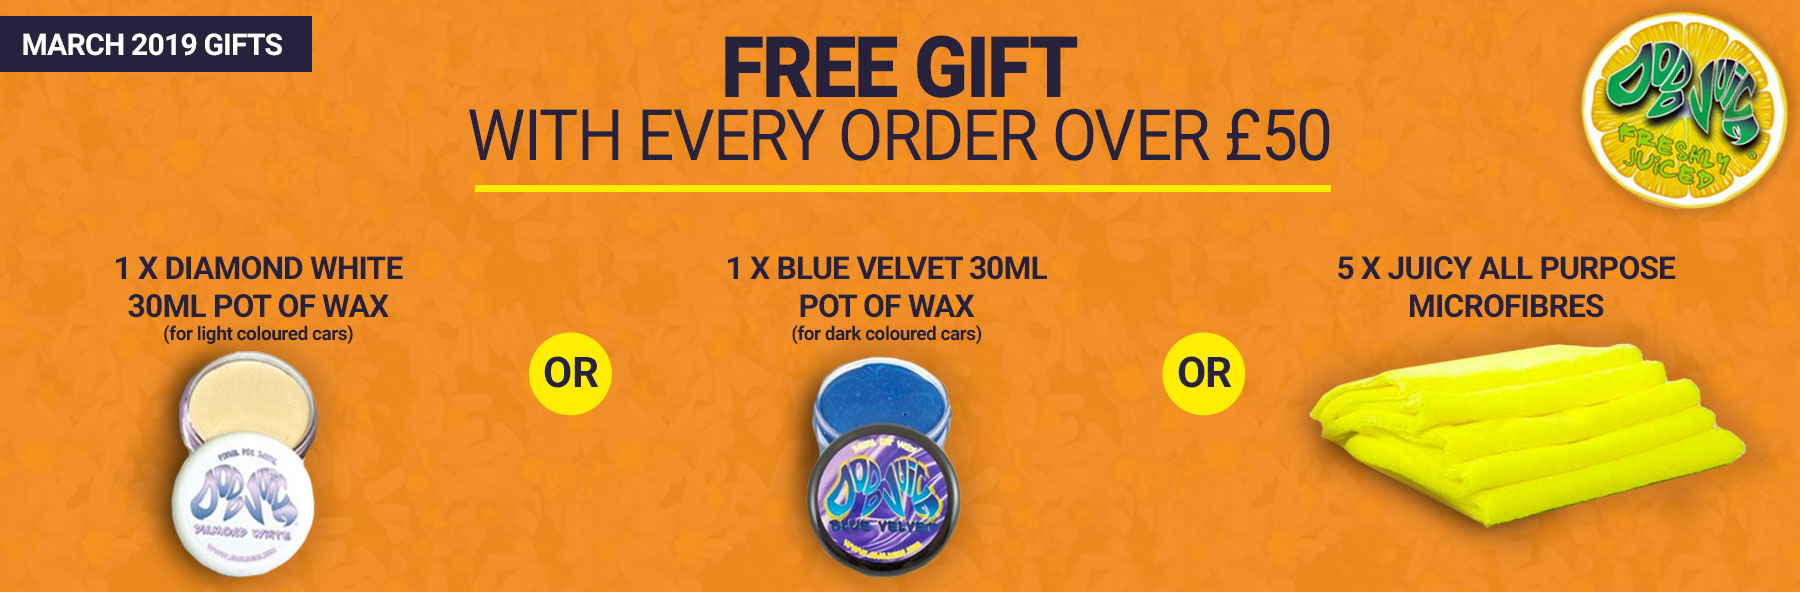 Free gifts on orders over £50.00